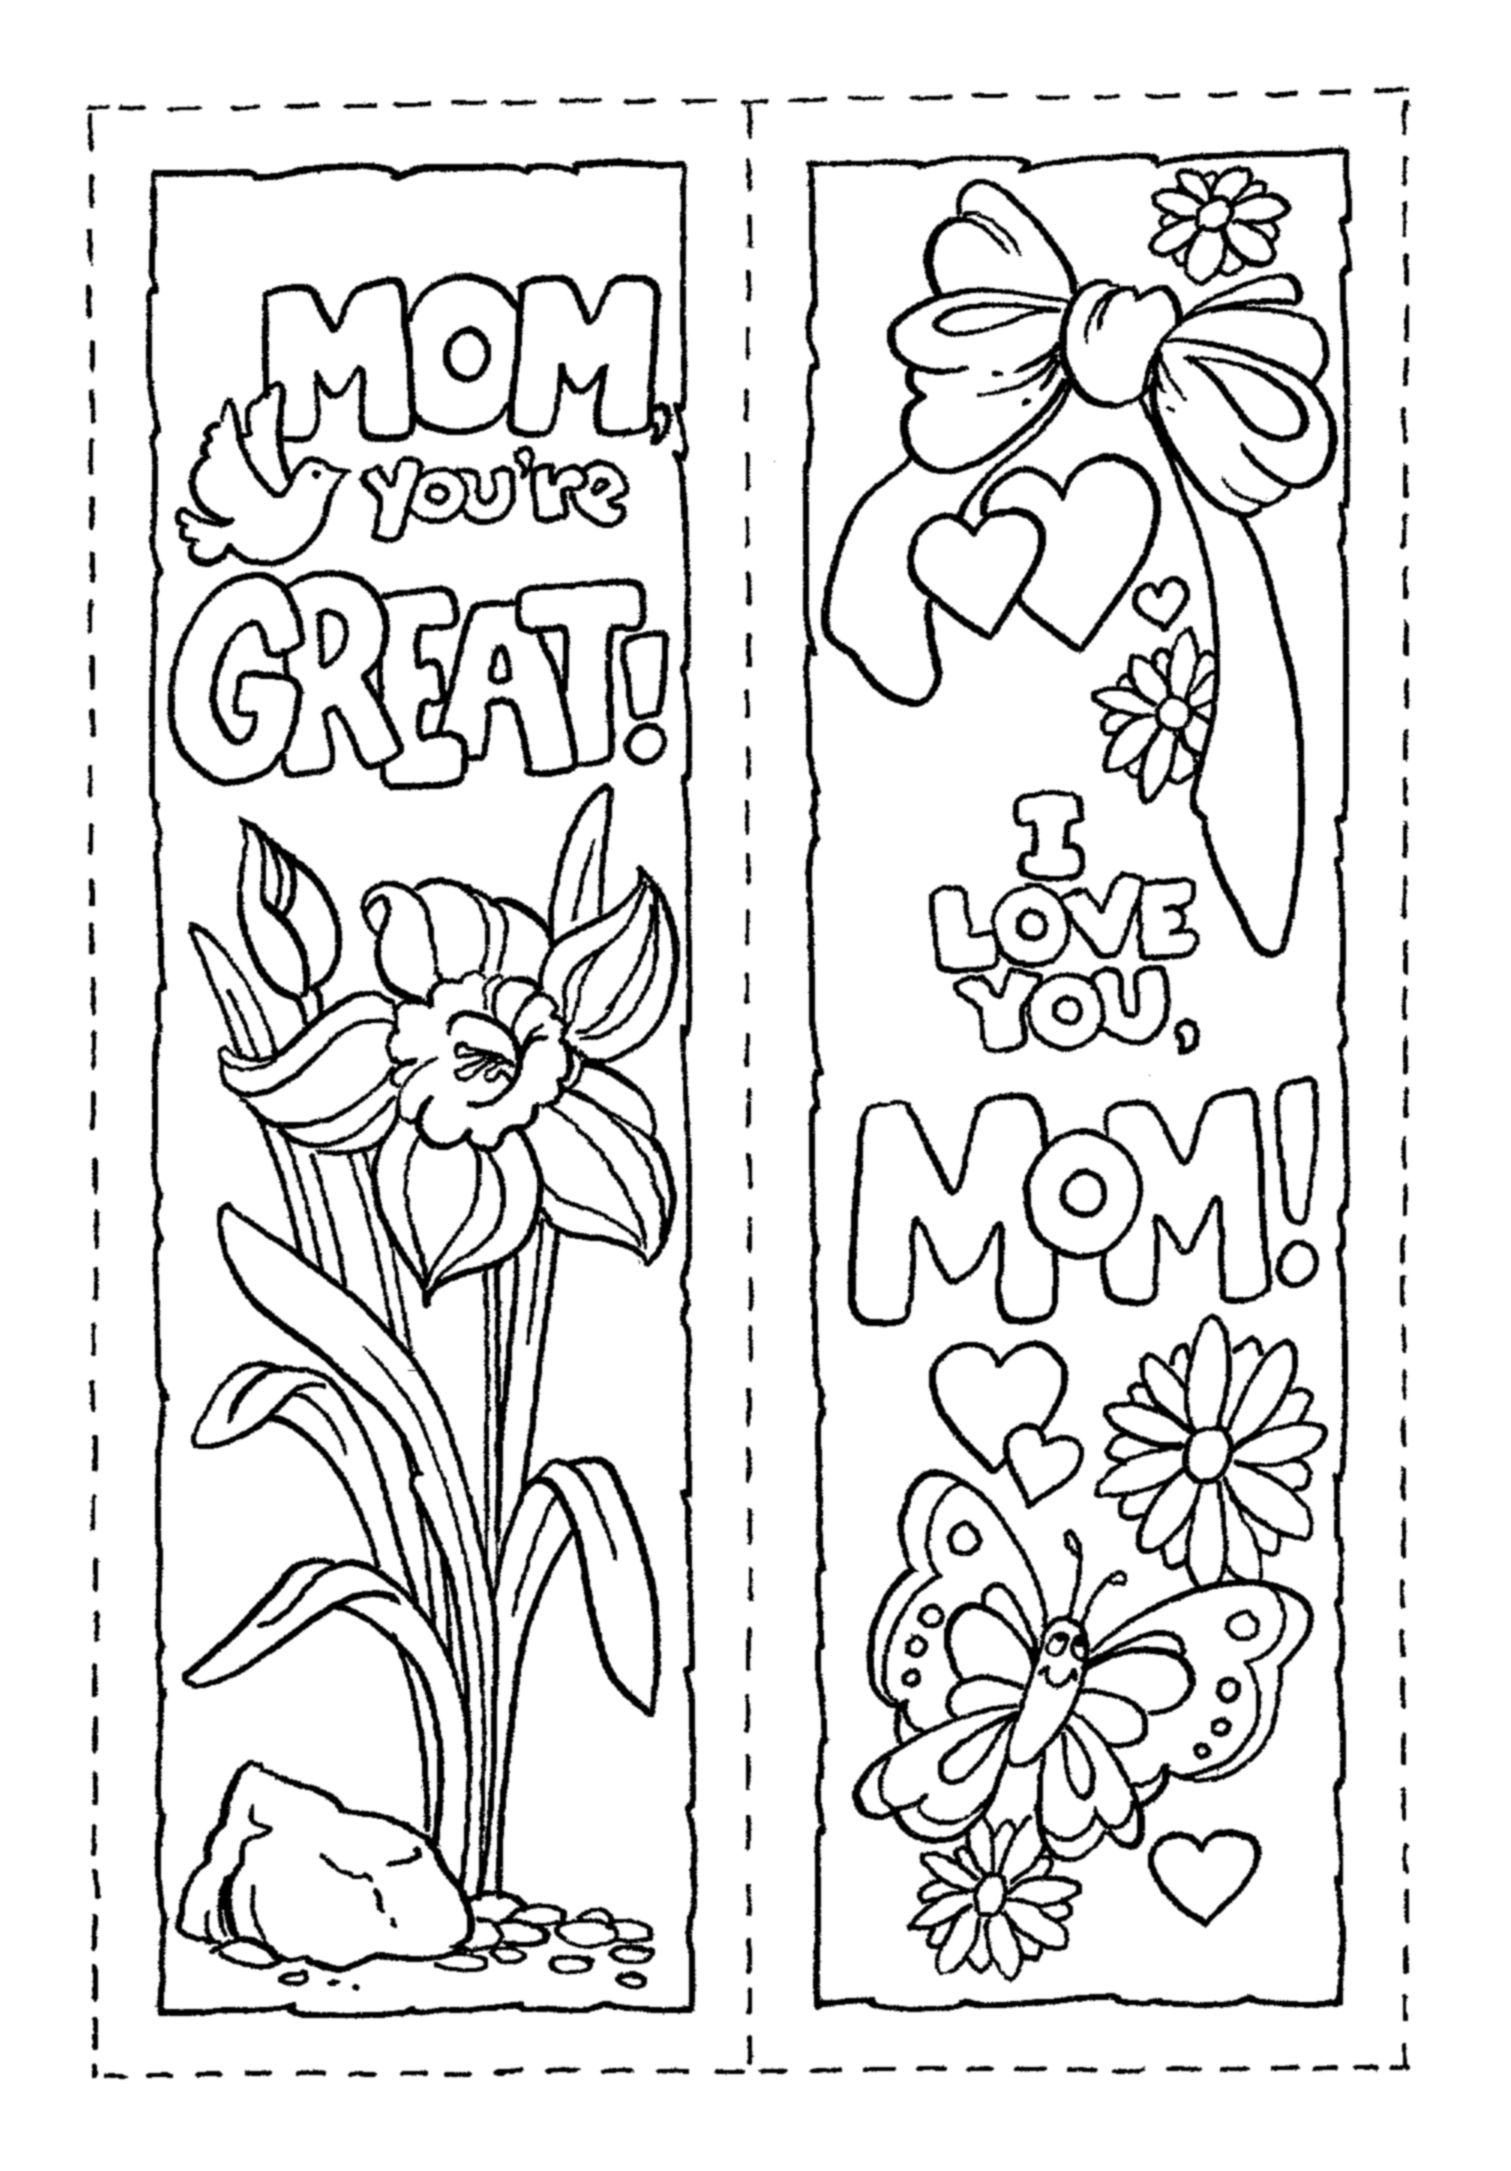 Coloring pages mother's day printable